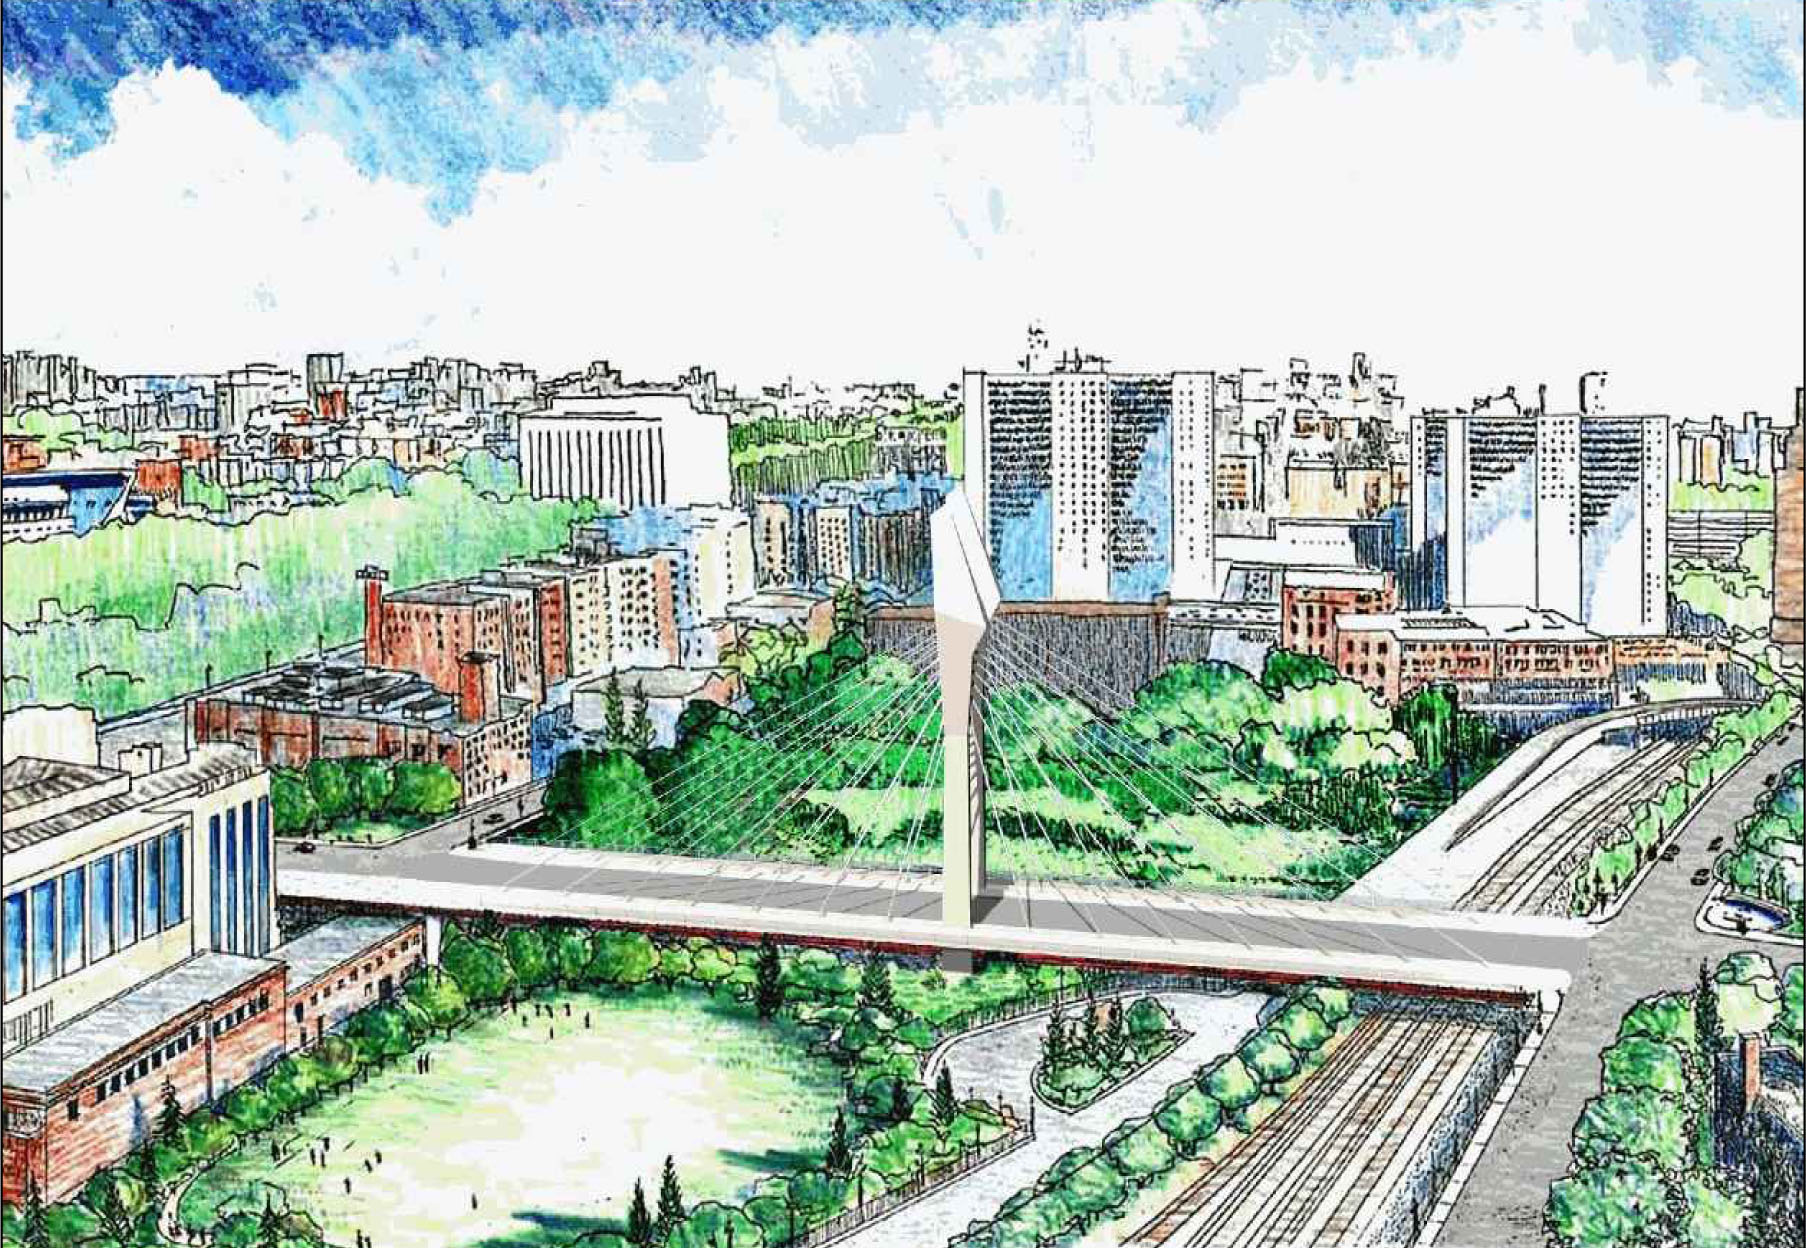 A rendering of the proposed bridge